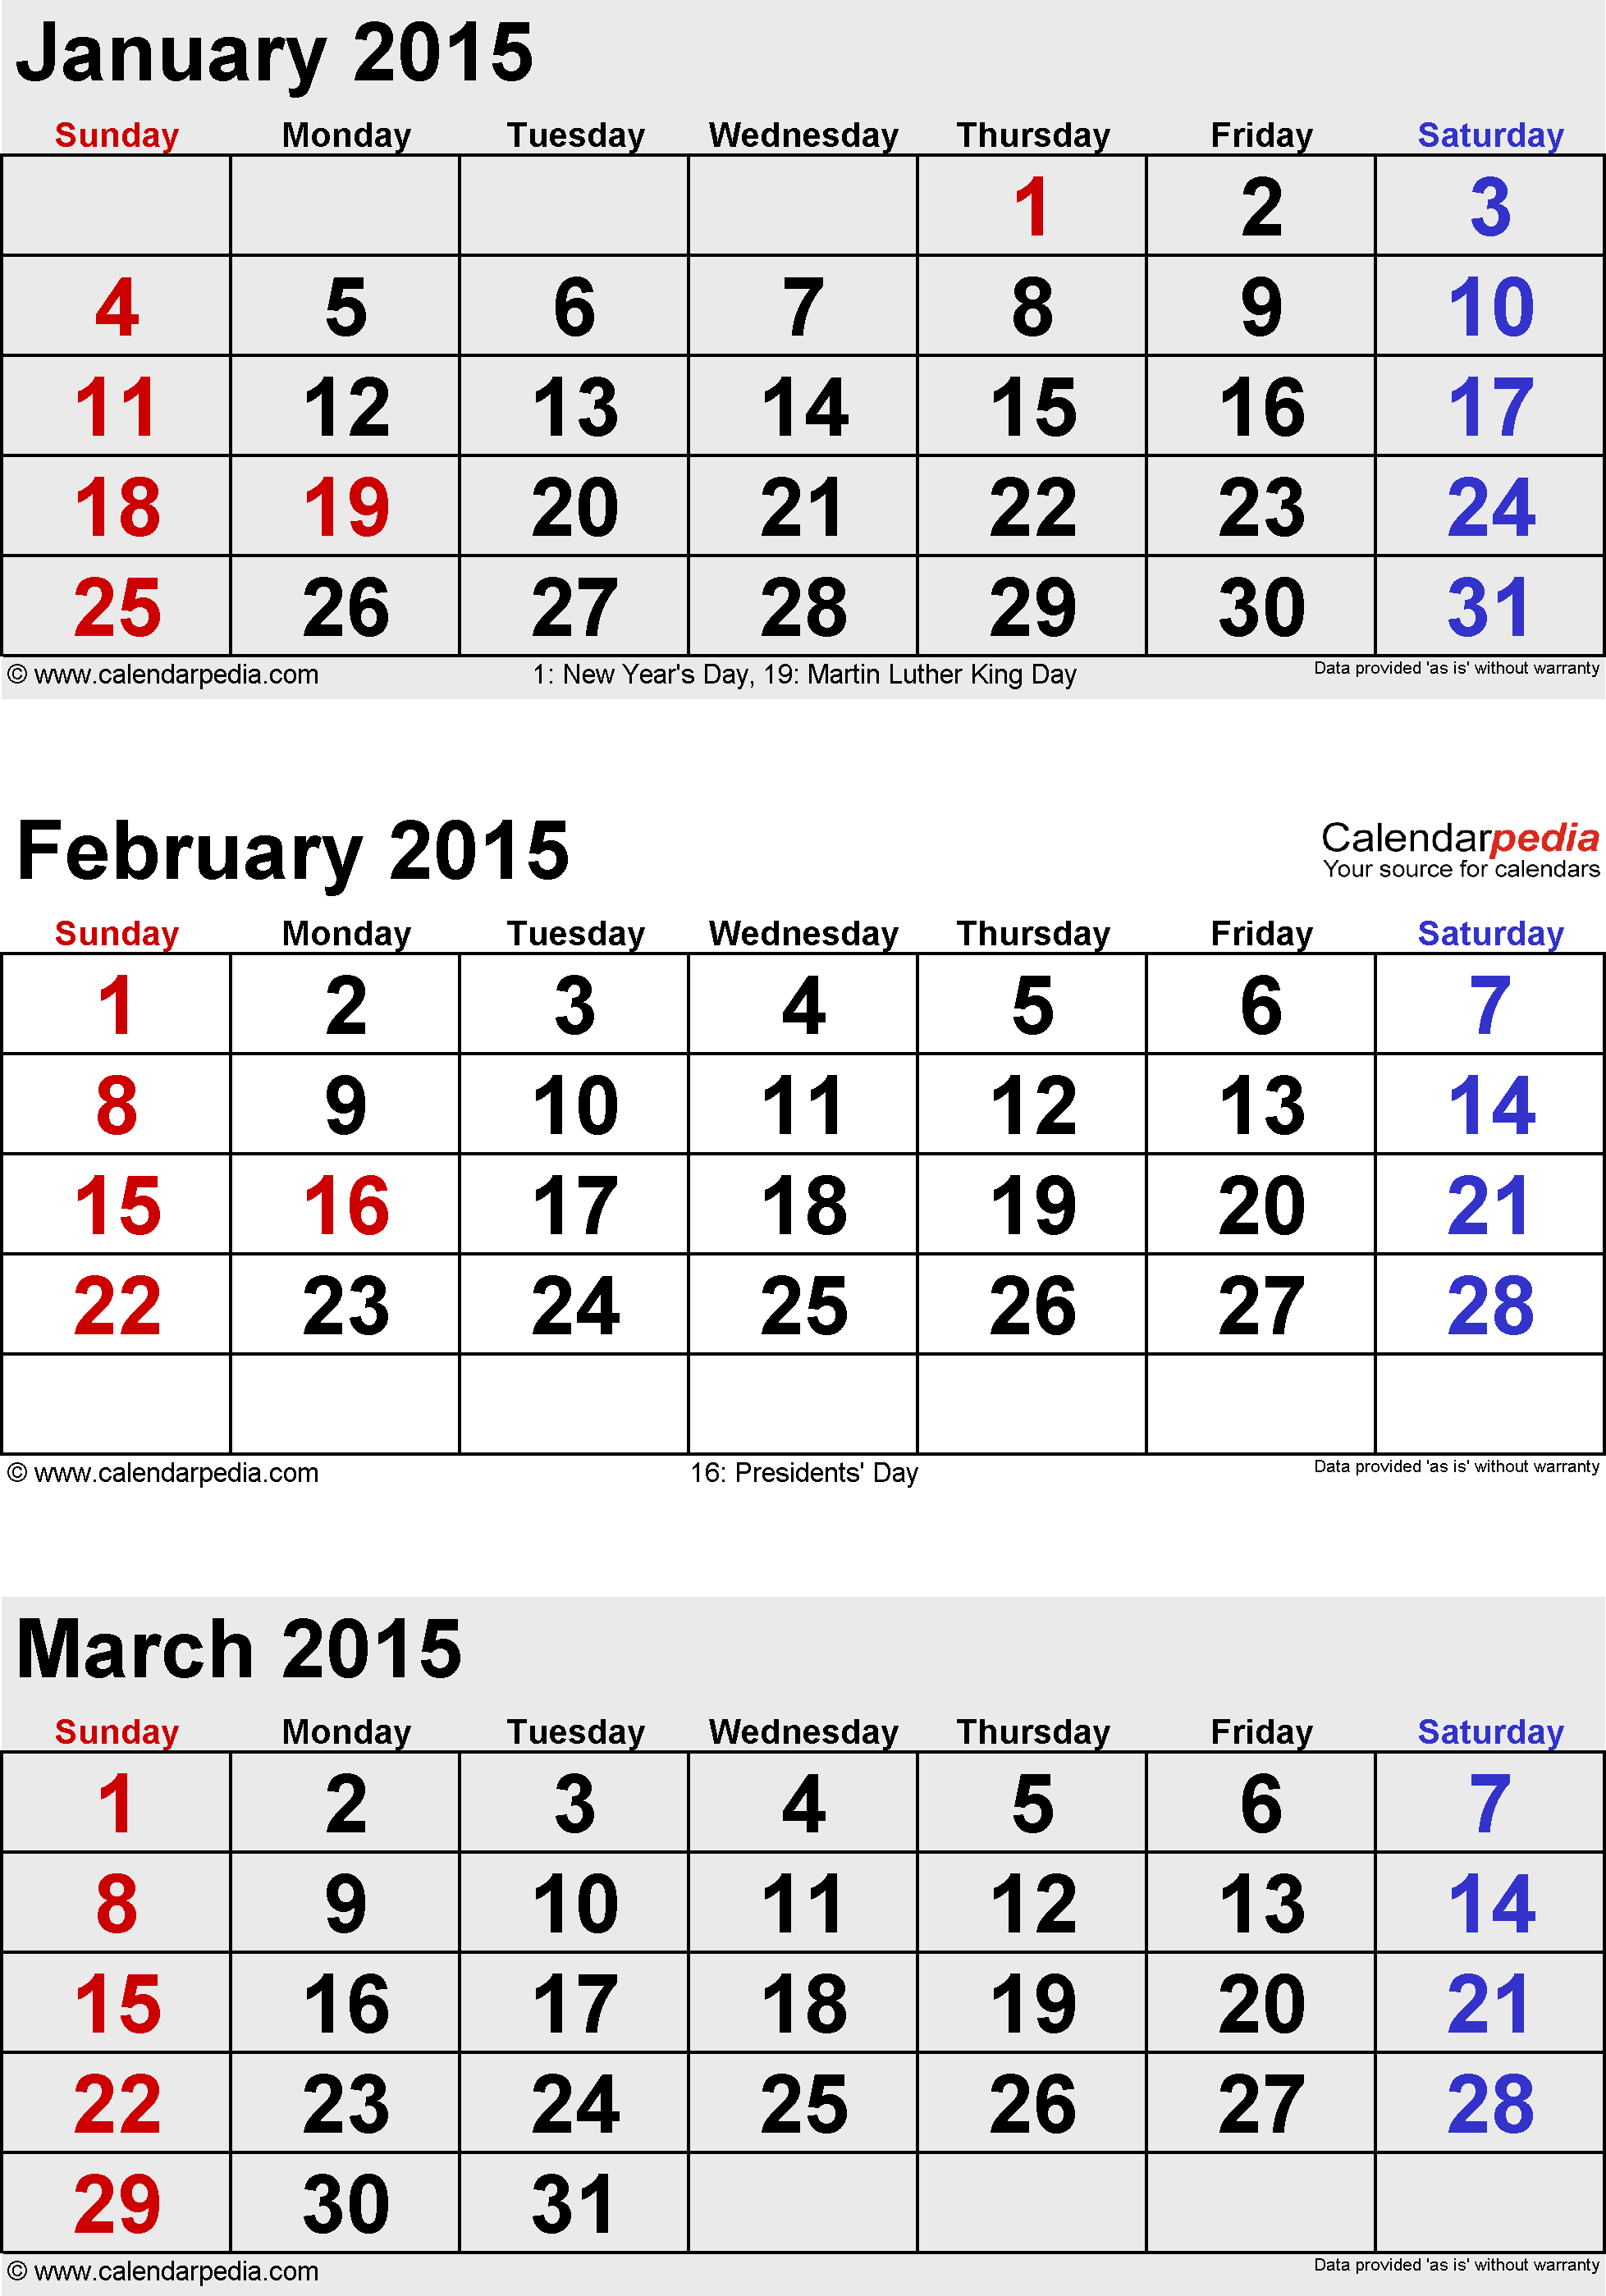 3 months calendar February/March/April 2015 in portrait format